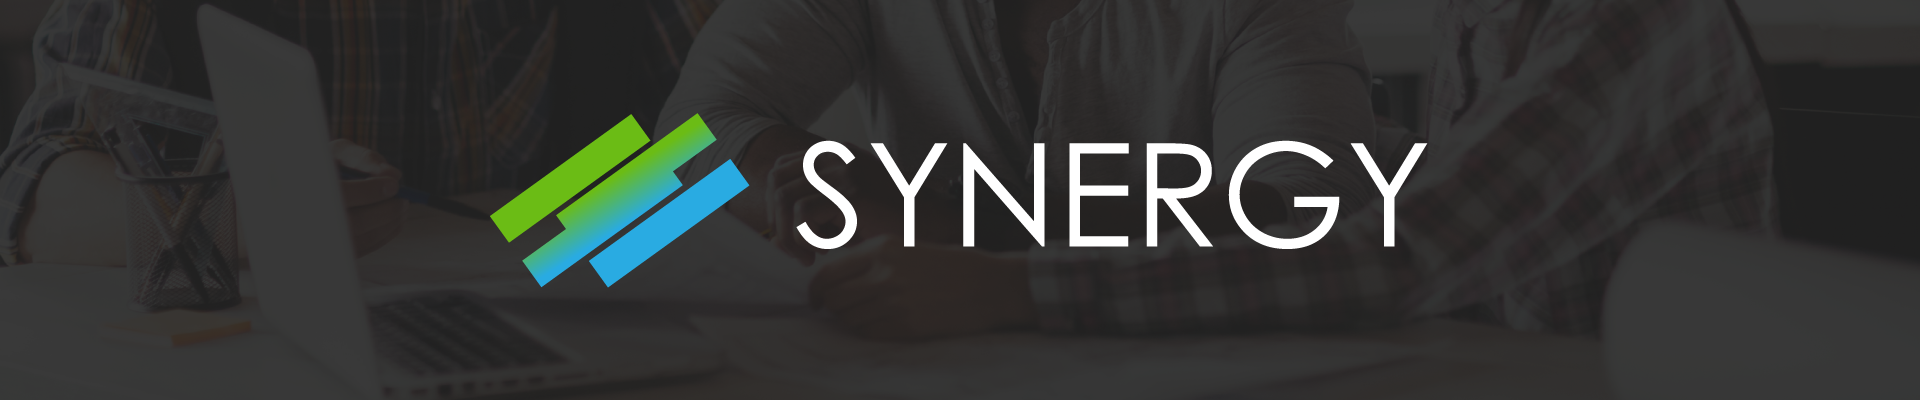 Synergy-Consultation-Banner.png